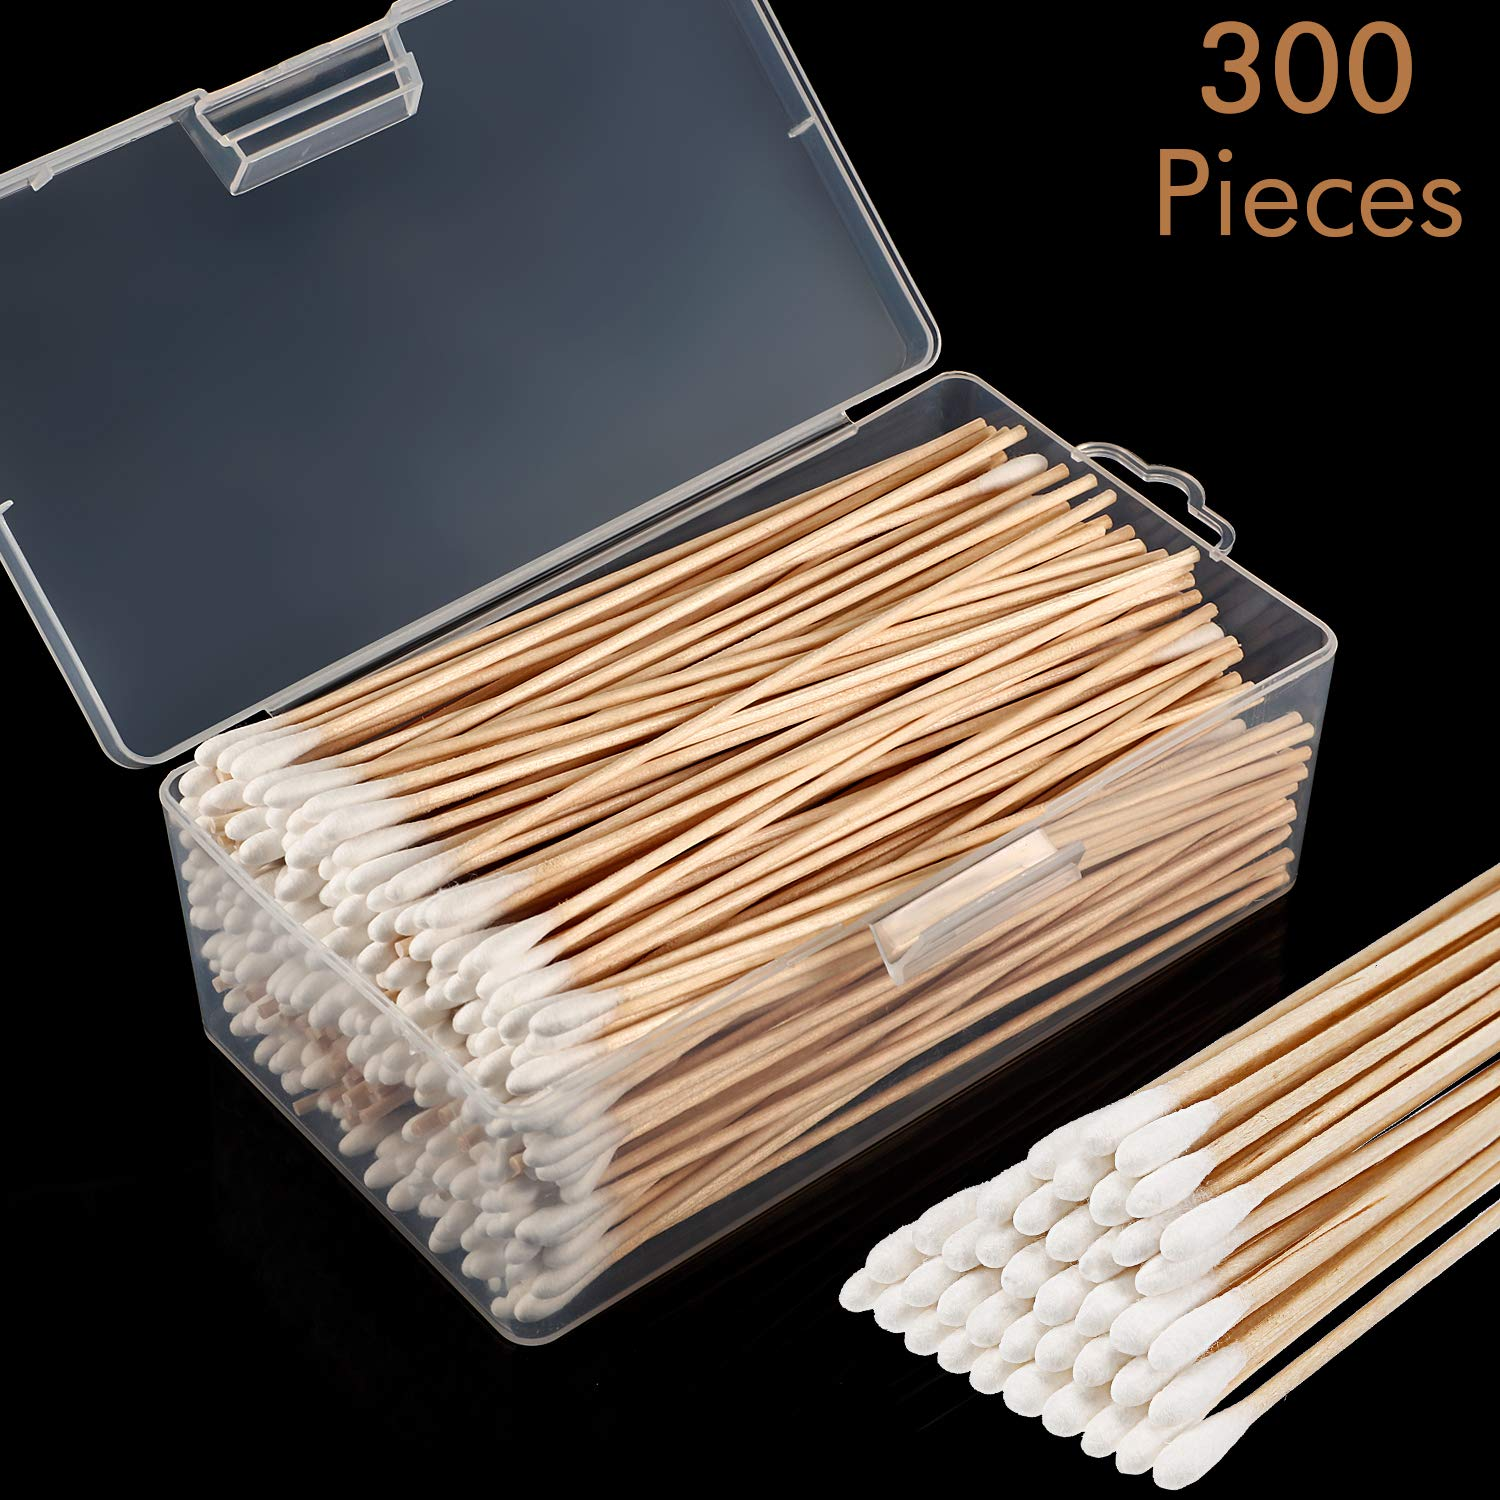 Norme Cotton Cleaning Swabs 6 Inch Caliber Cleaning Swabs Single Cuspidal Tip with Wooden Handle for Jewelry Ceramics Electronics in Storage Case (Round Tip) by Norme